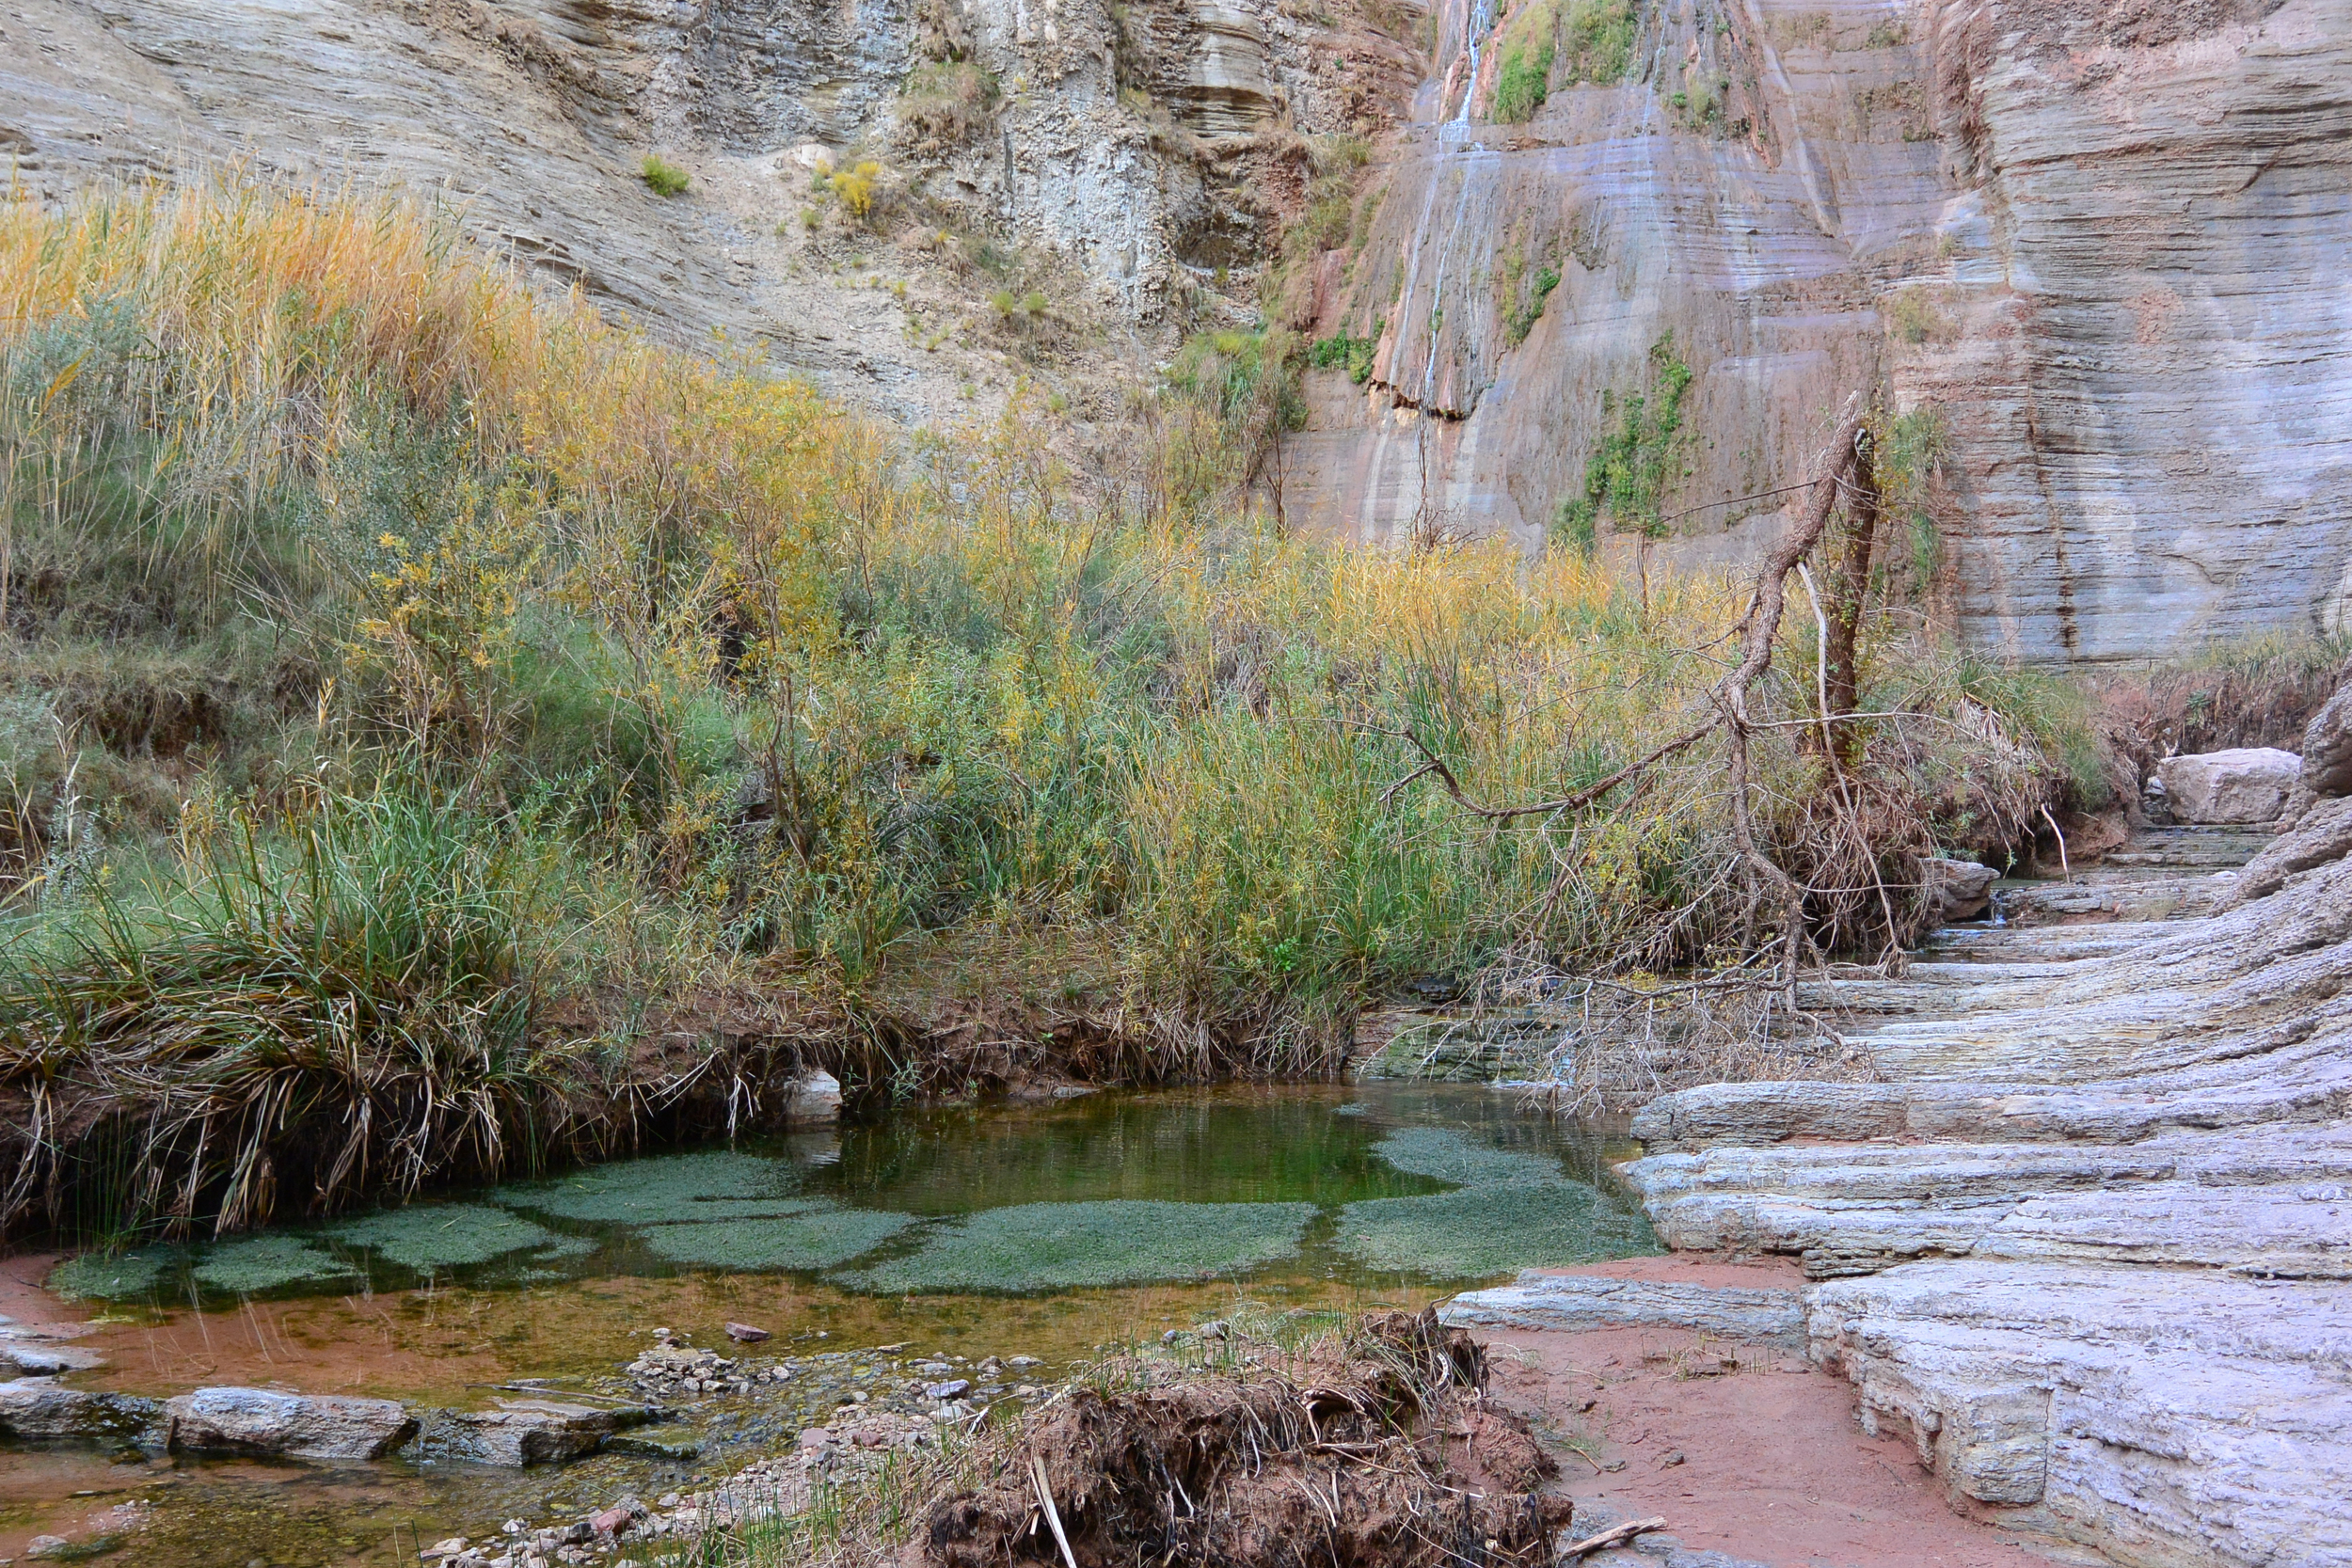 An unnamed spring in Grand Canyon National Park. One of many virtually unmapped or surveyed, this spring plays host to many springs-dependent species including McDougall's Flaveria. Photo by Rich Rudow.